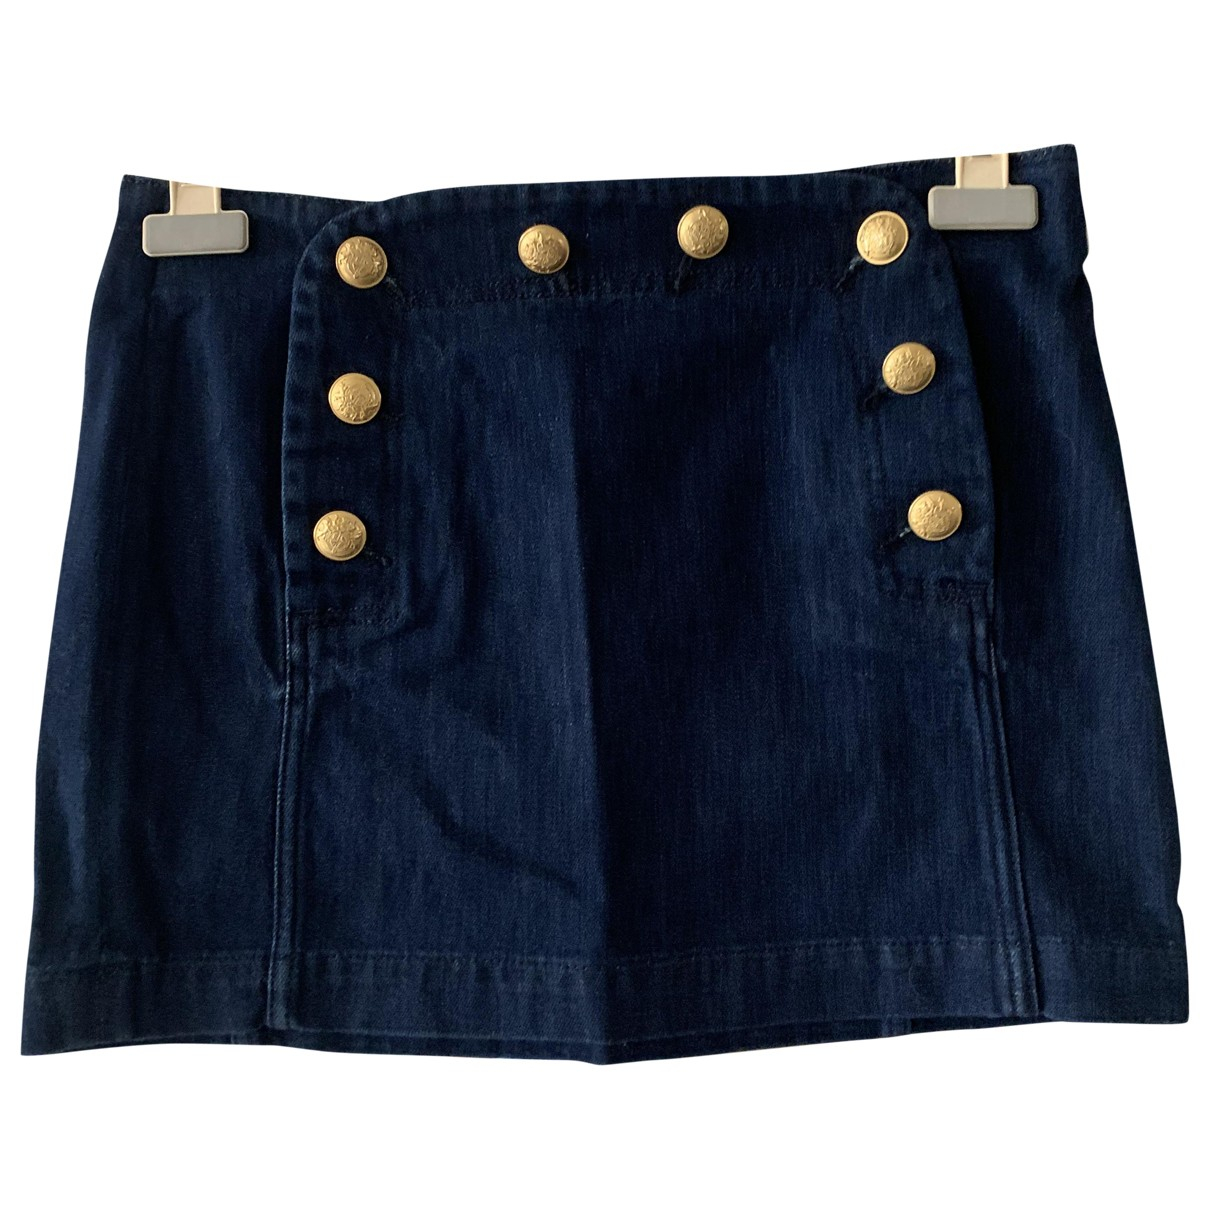 Sézane Spring Summer 2019 Blue Cotton skirt for Women 36 FR